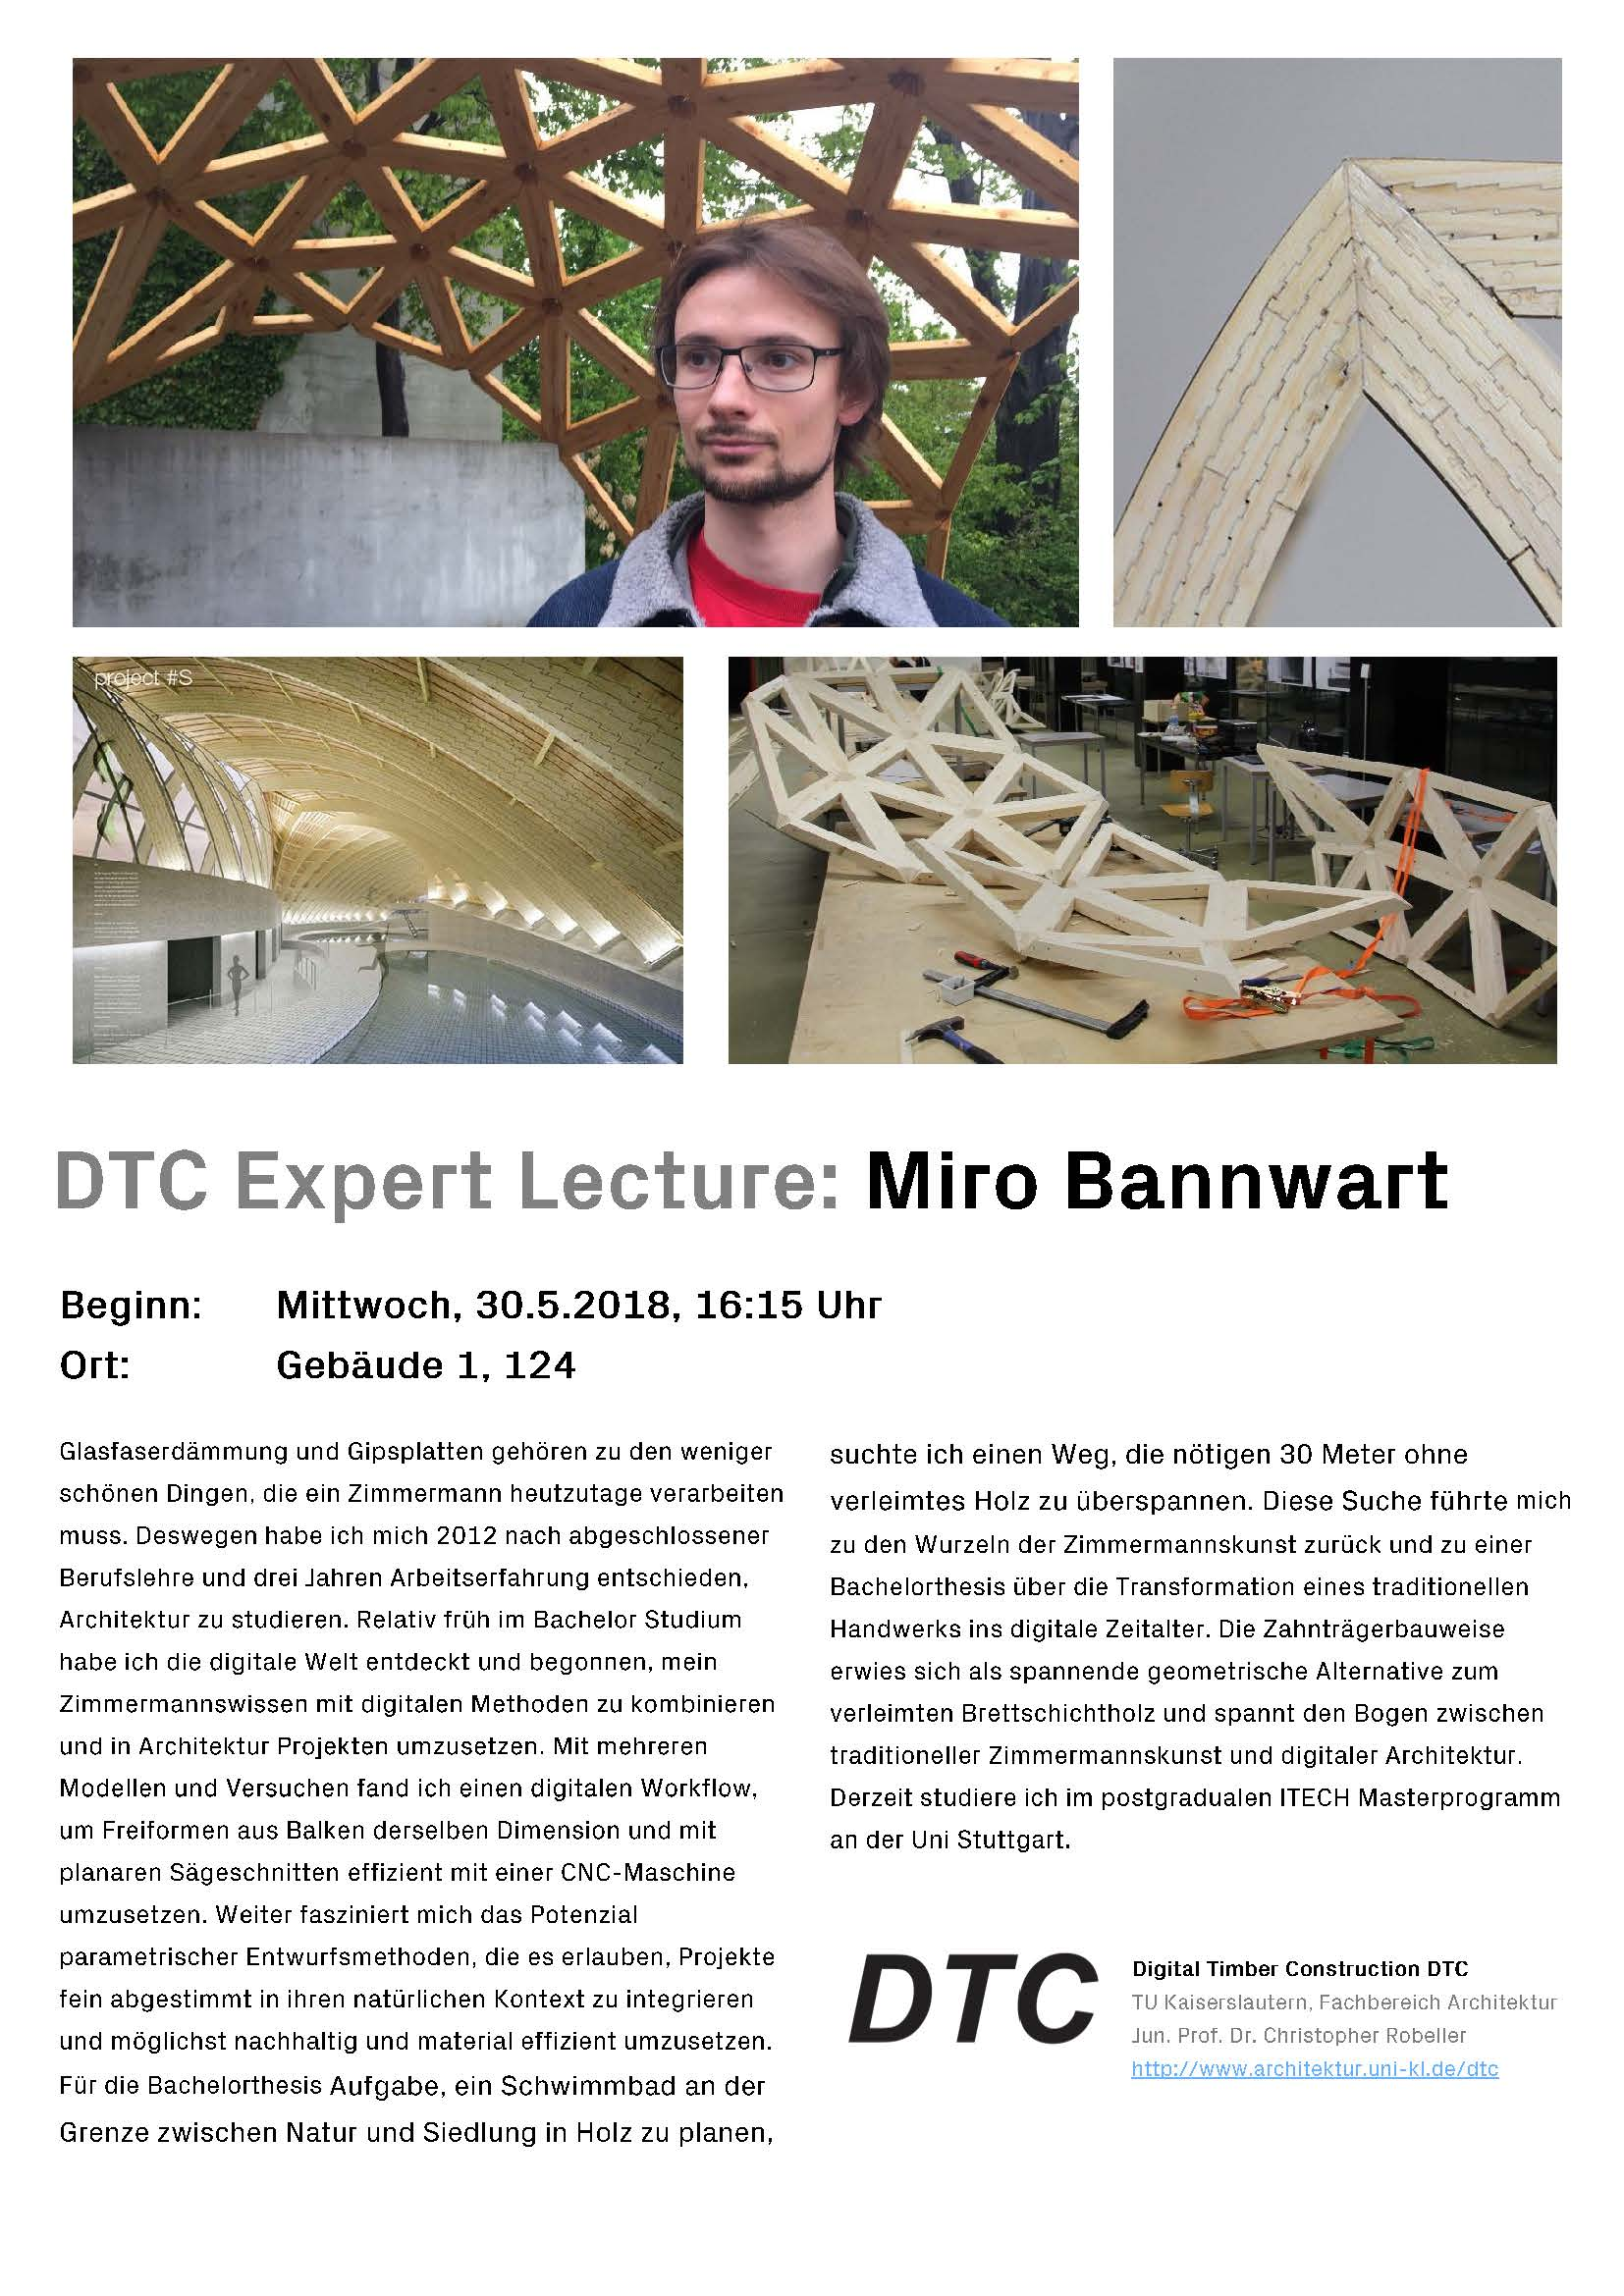 DTC_lecture_Miro-Bannwart